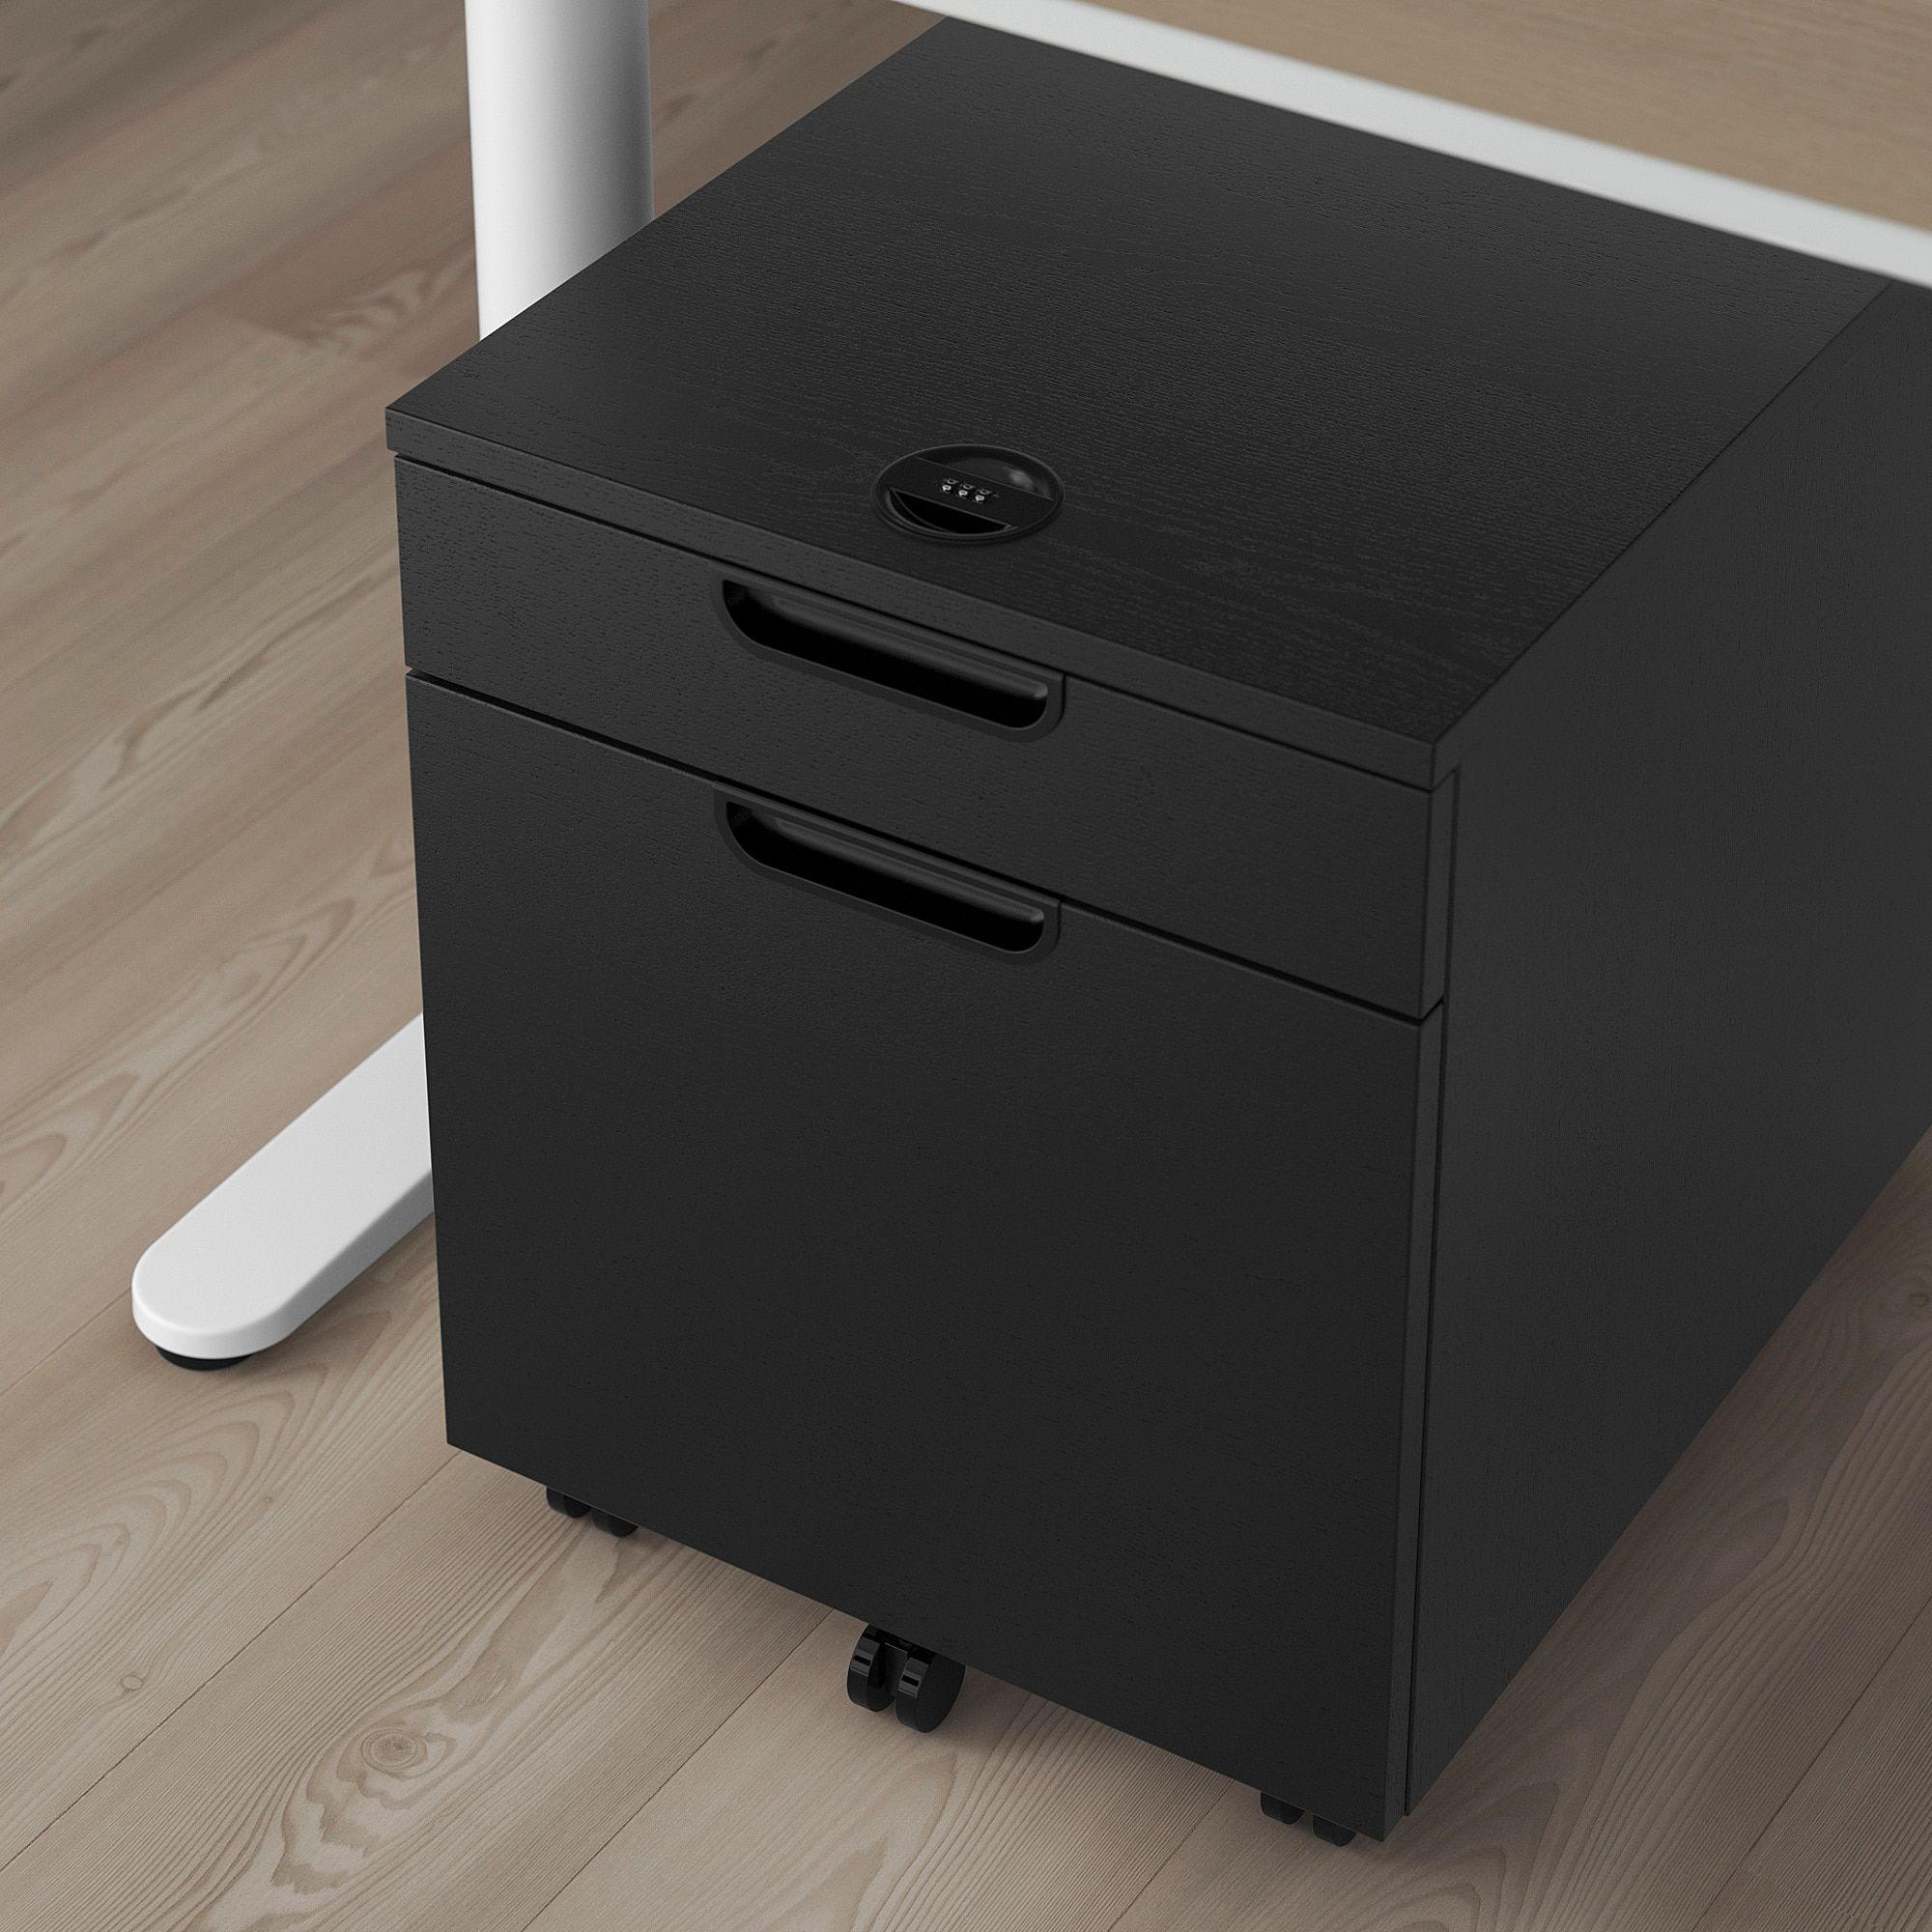 Galant Drawer Unit Drop File Storage Black Stained Ash Veneer 17 3 4x21 5 8 Ikea In 2020 Drawer Unit Storage Ikea Galant